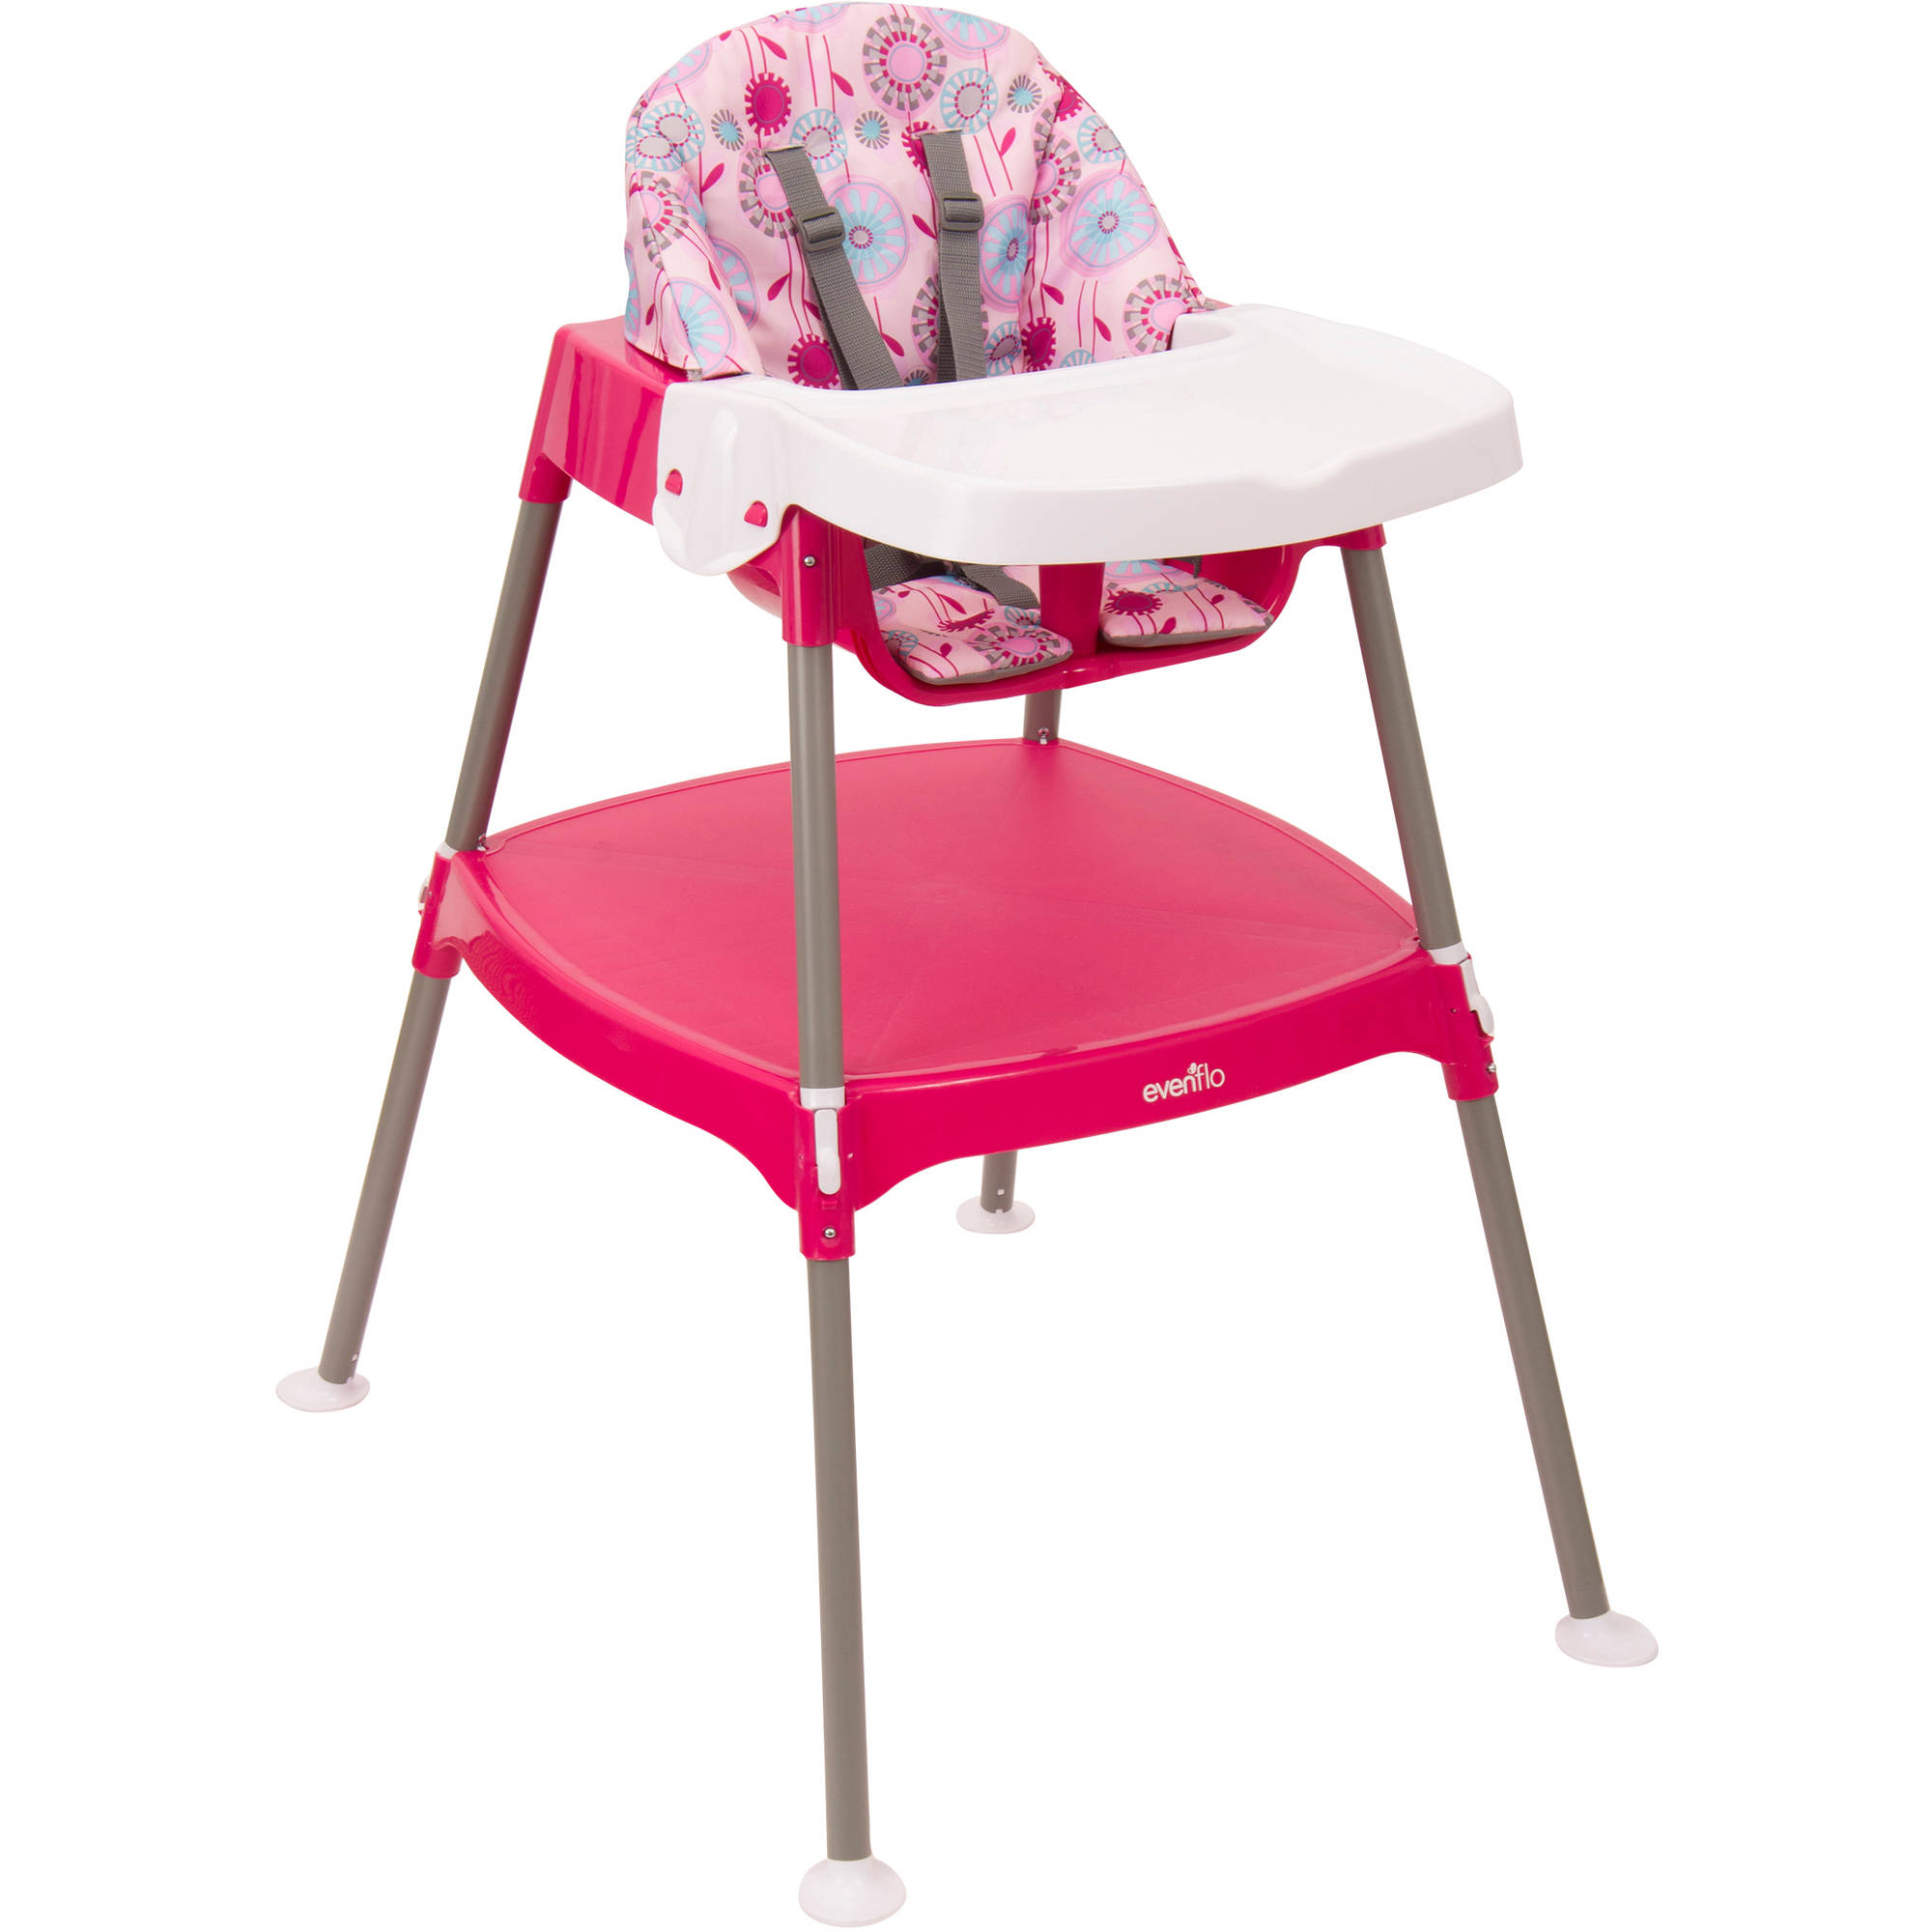 baby chairs at walmart used waiting room generic convertible 3n1 high chair brianne com departments